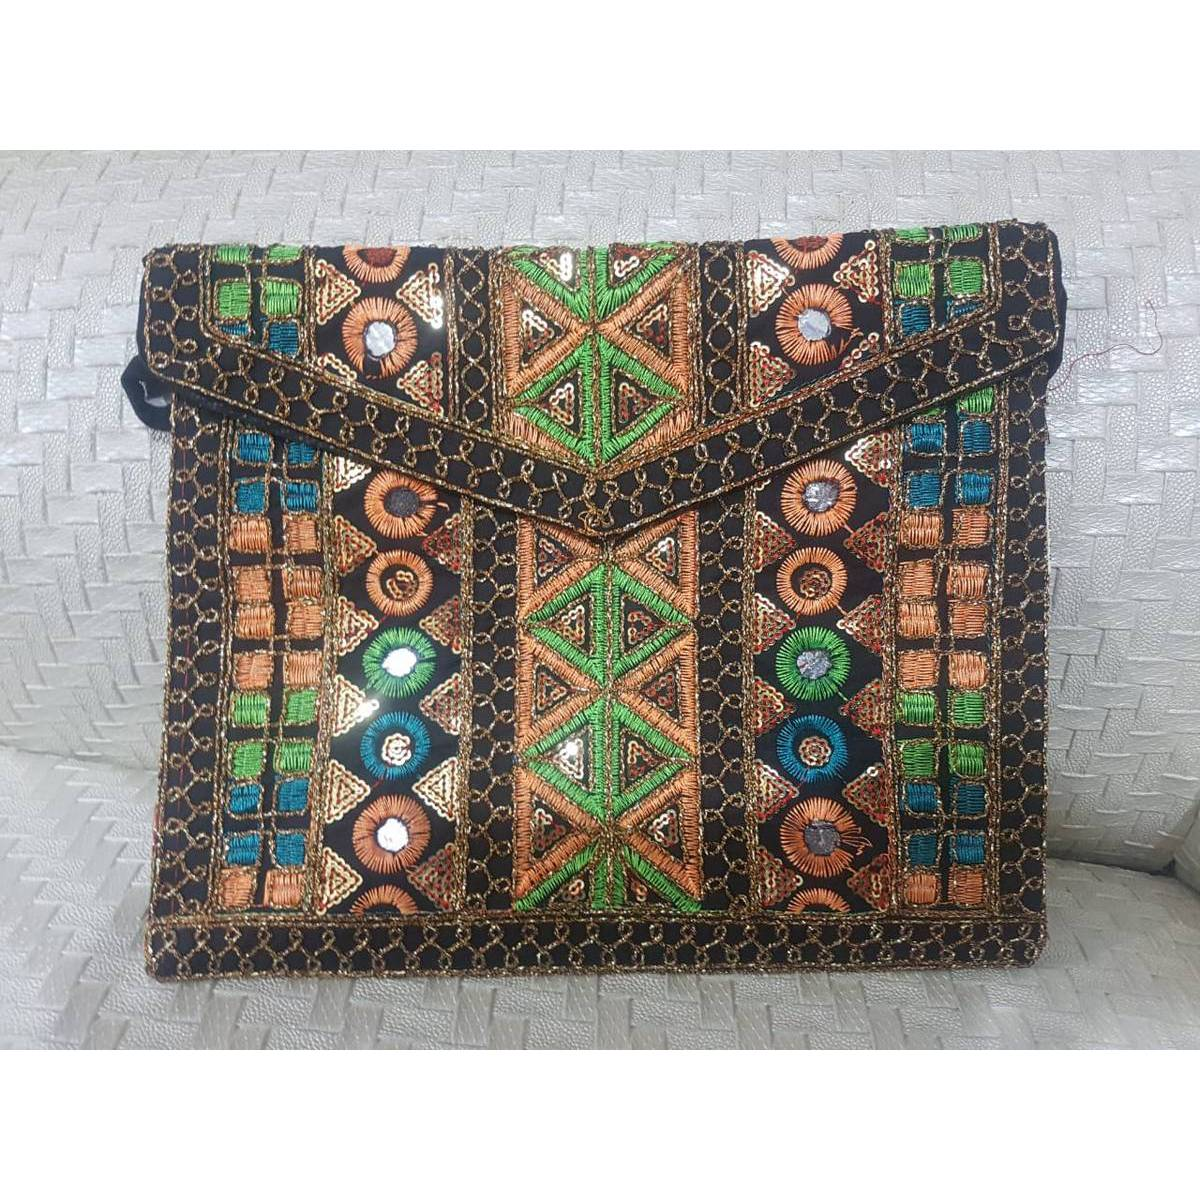 Traditional hand made bags - Hand made bags for ladies - Stylish handmade bags- Handmade bags for girls- Handmade multi colour bags